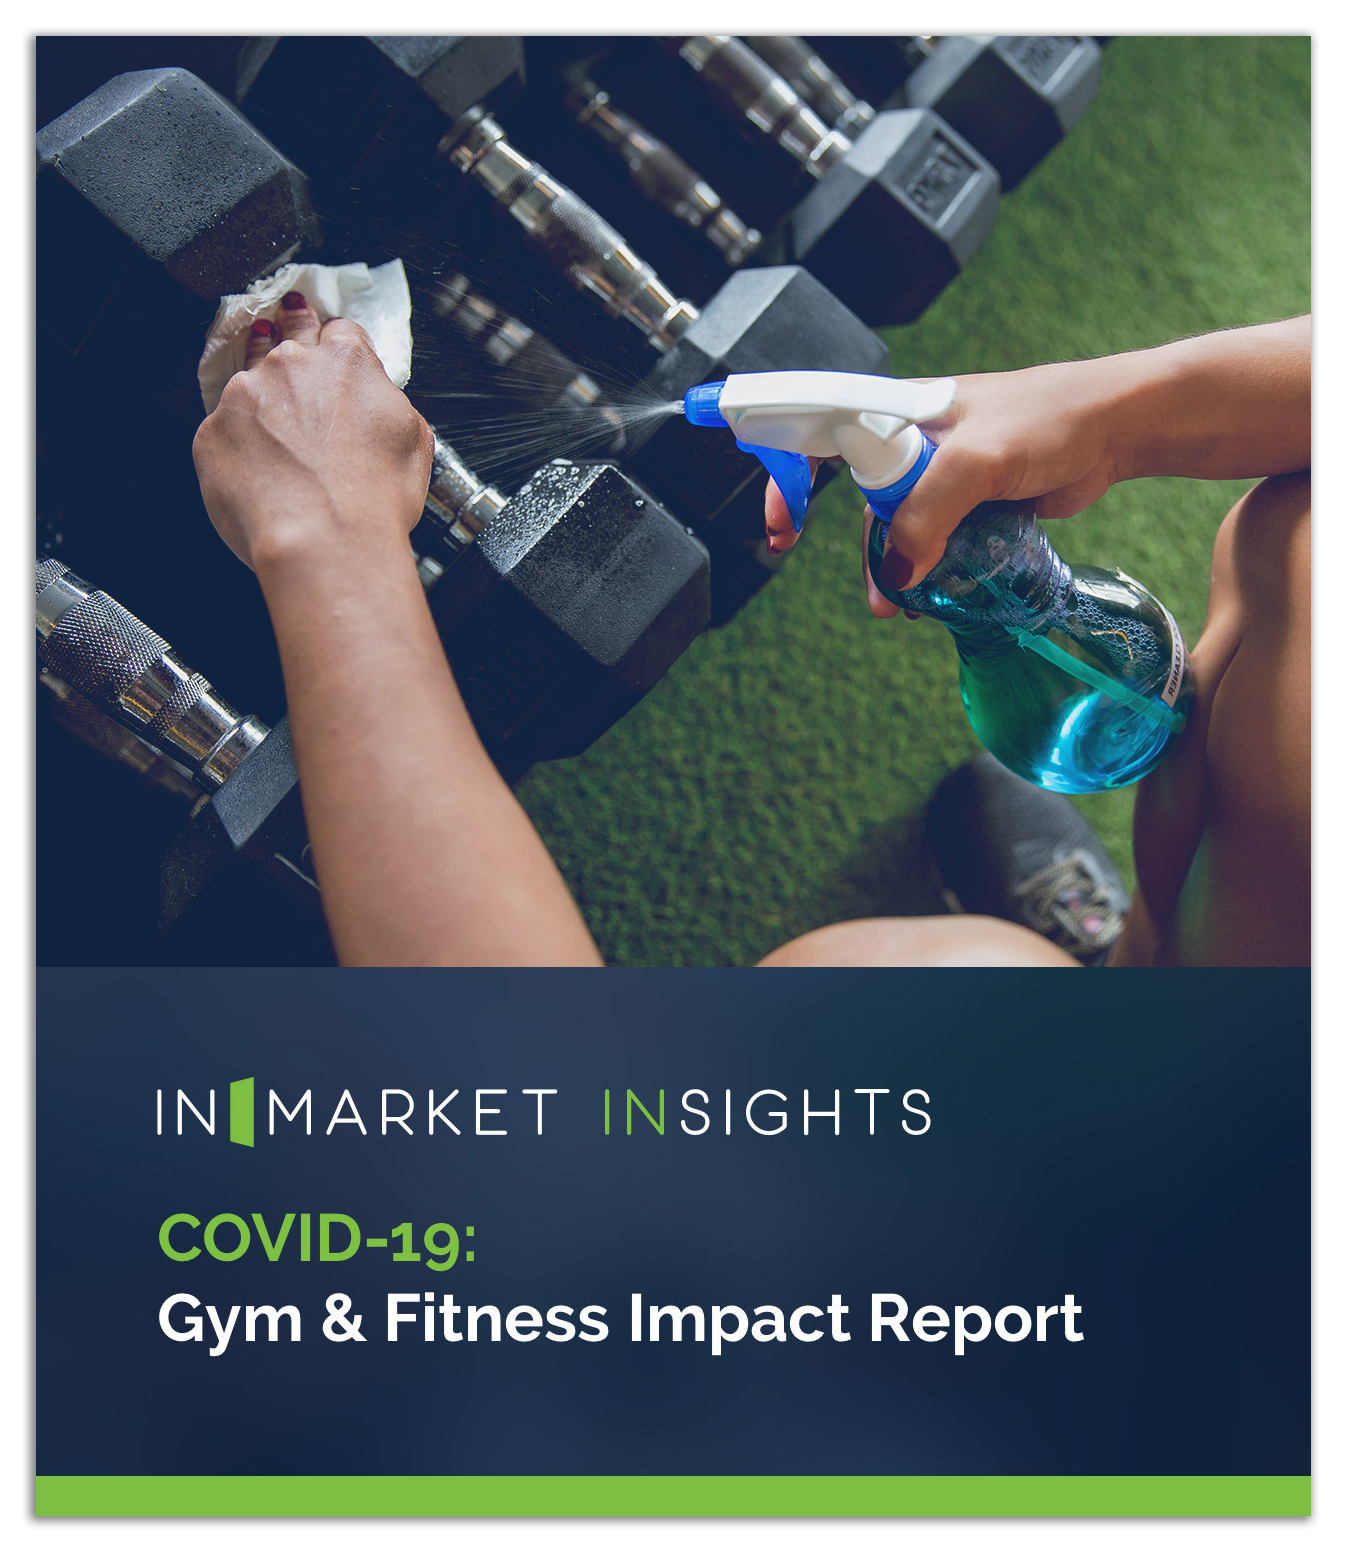 C-19 Gyms Impact Report Cover Photo Shadowed